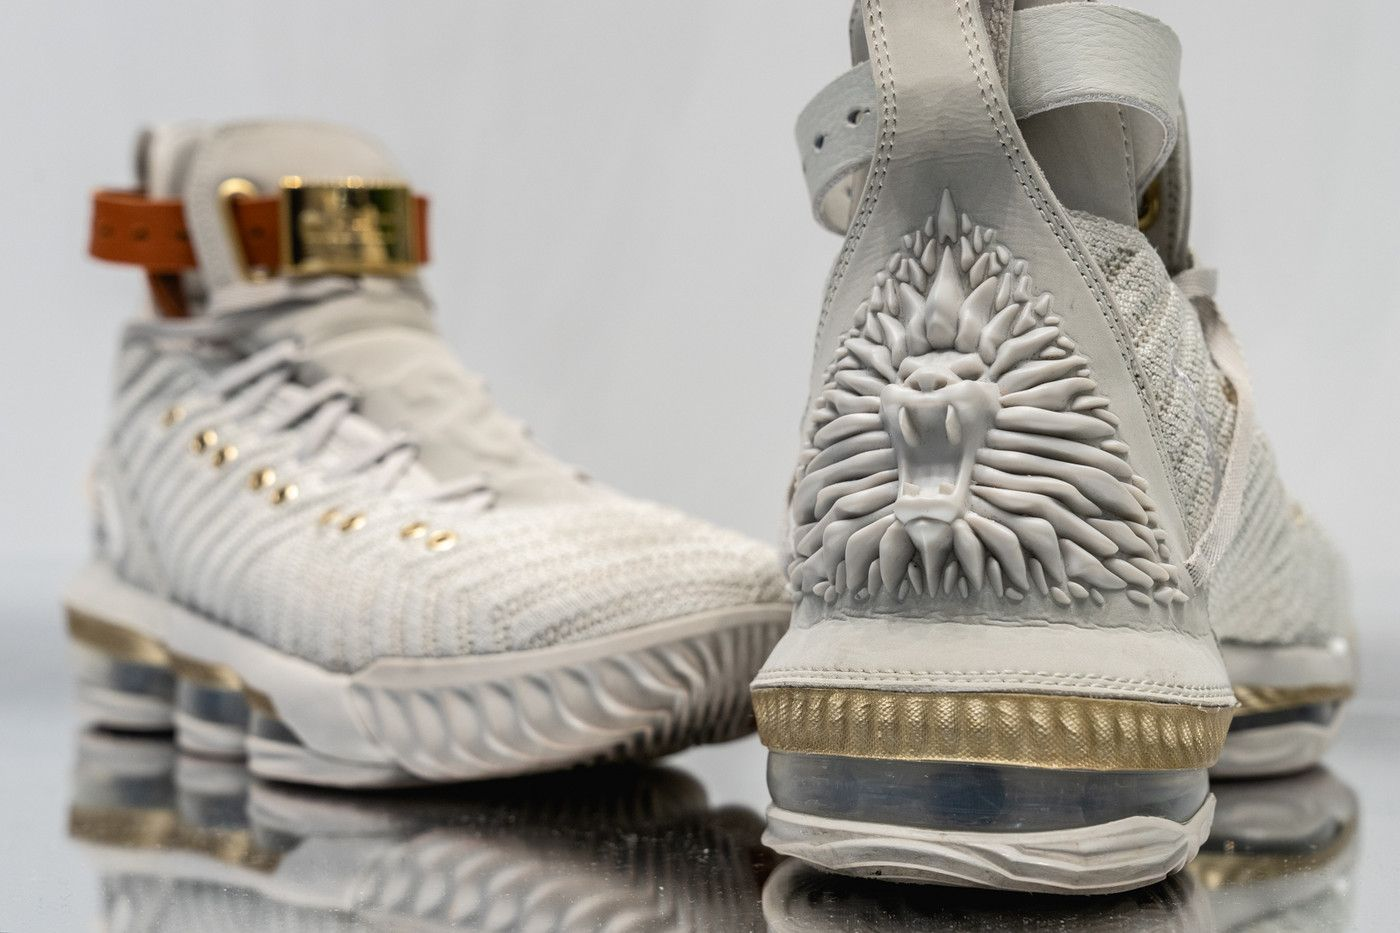 online store 12bec 15fc2 The HFR x Nike LeBron 16 Is Fit for a Queen | Shoe Game ...